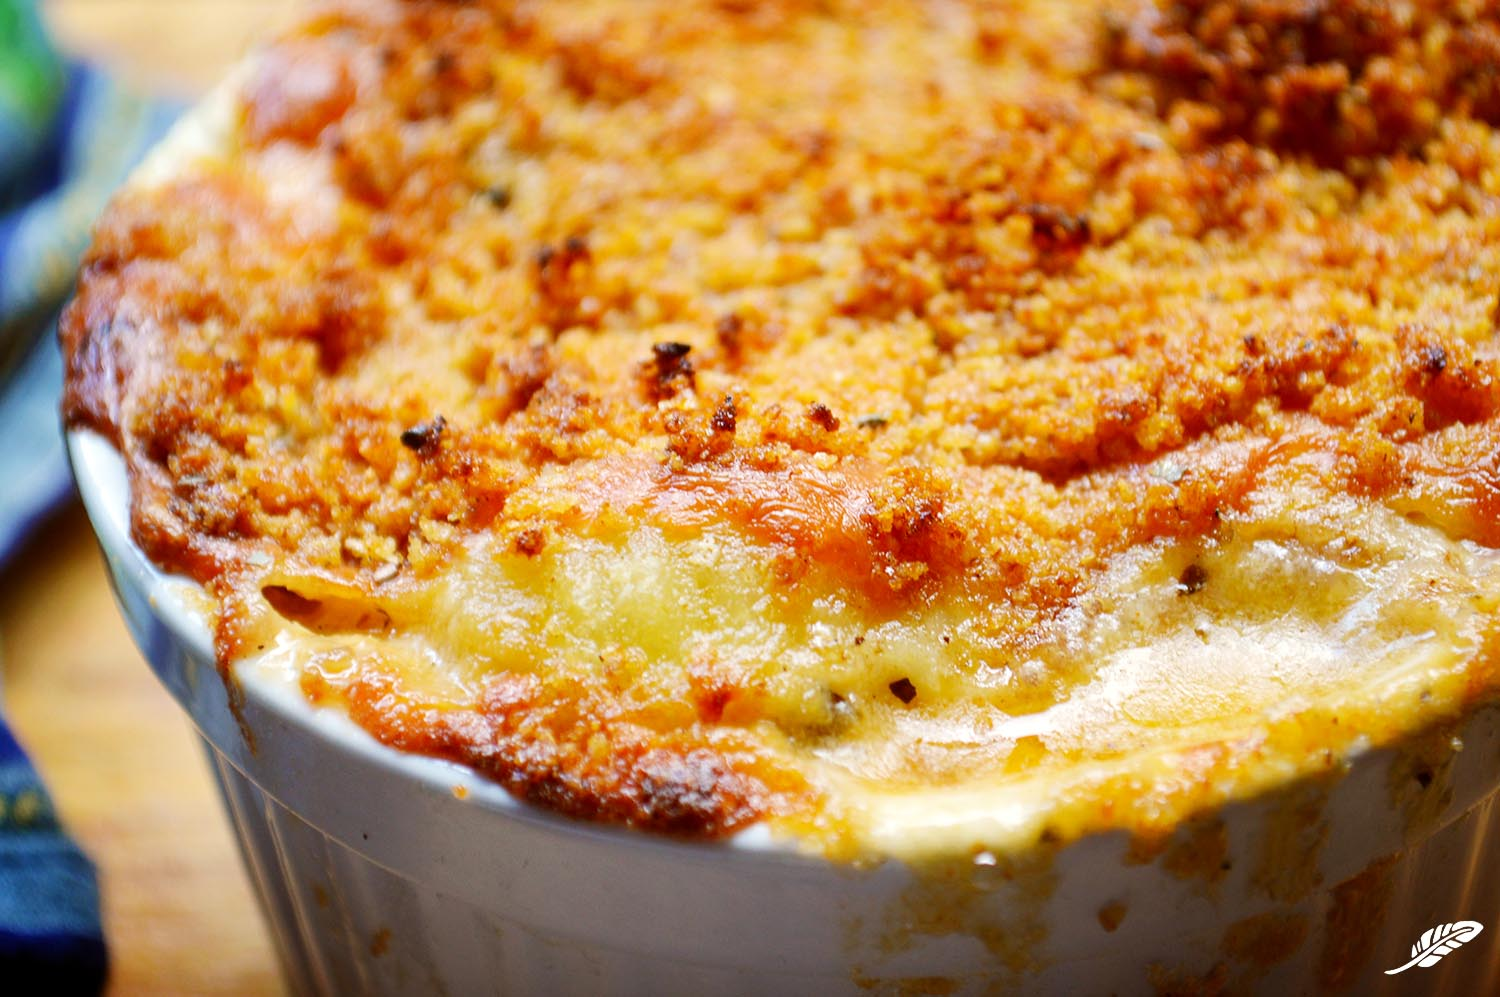 Baked Gnocchi 'N' Cheese